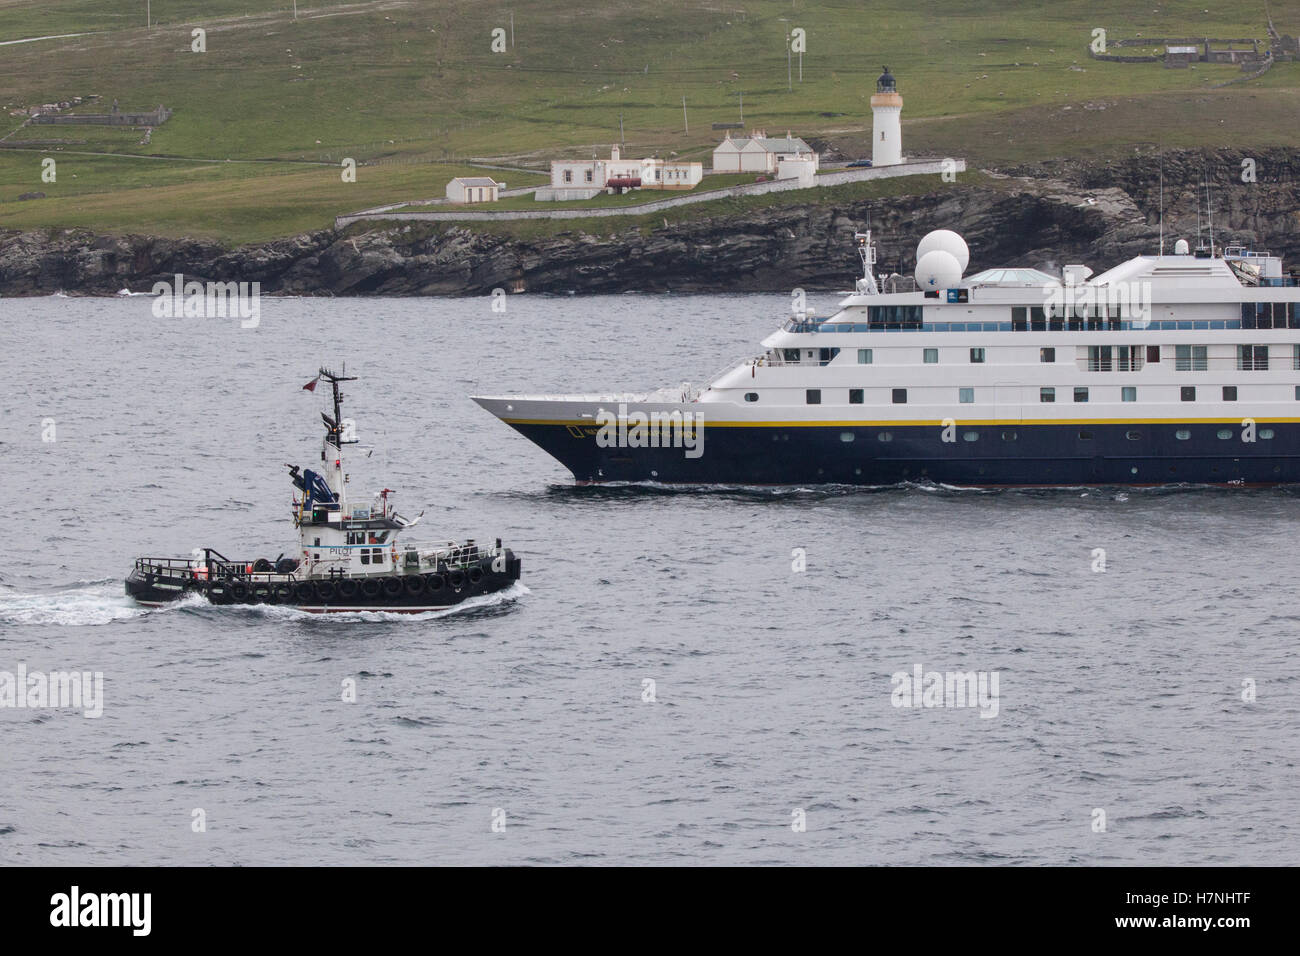 Pilot ship escorts National Geographic Orion in Shetland waters near Lerwick, passing Bressay lighthouse, Kirkabister - Stock Image